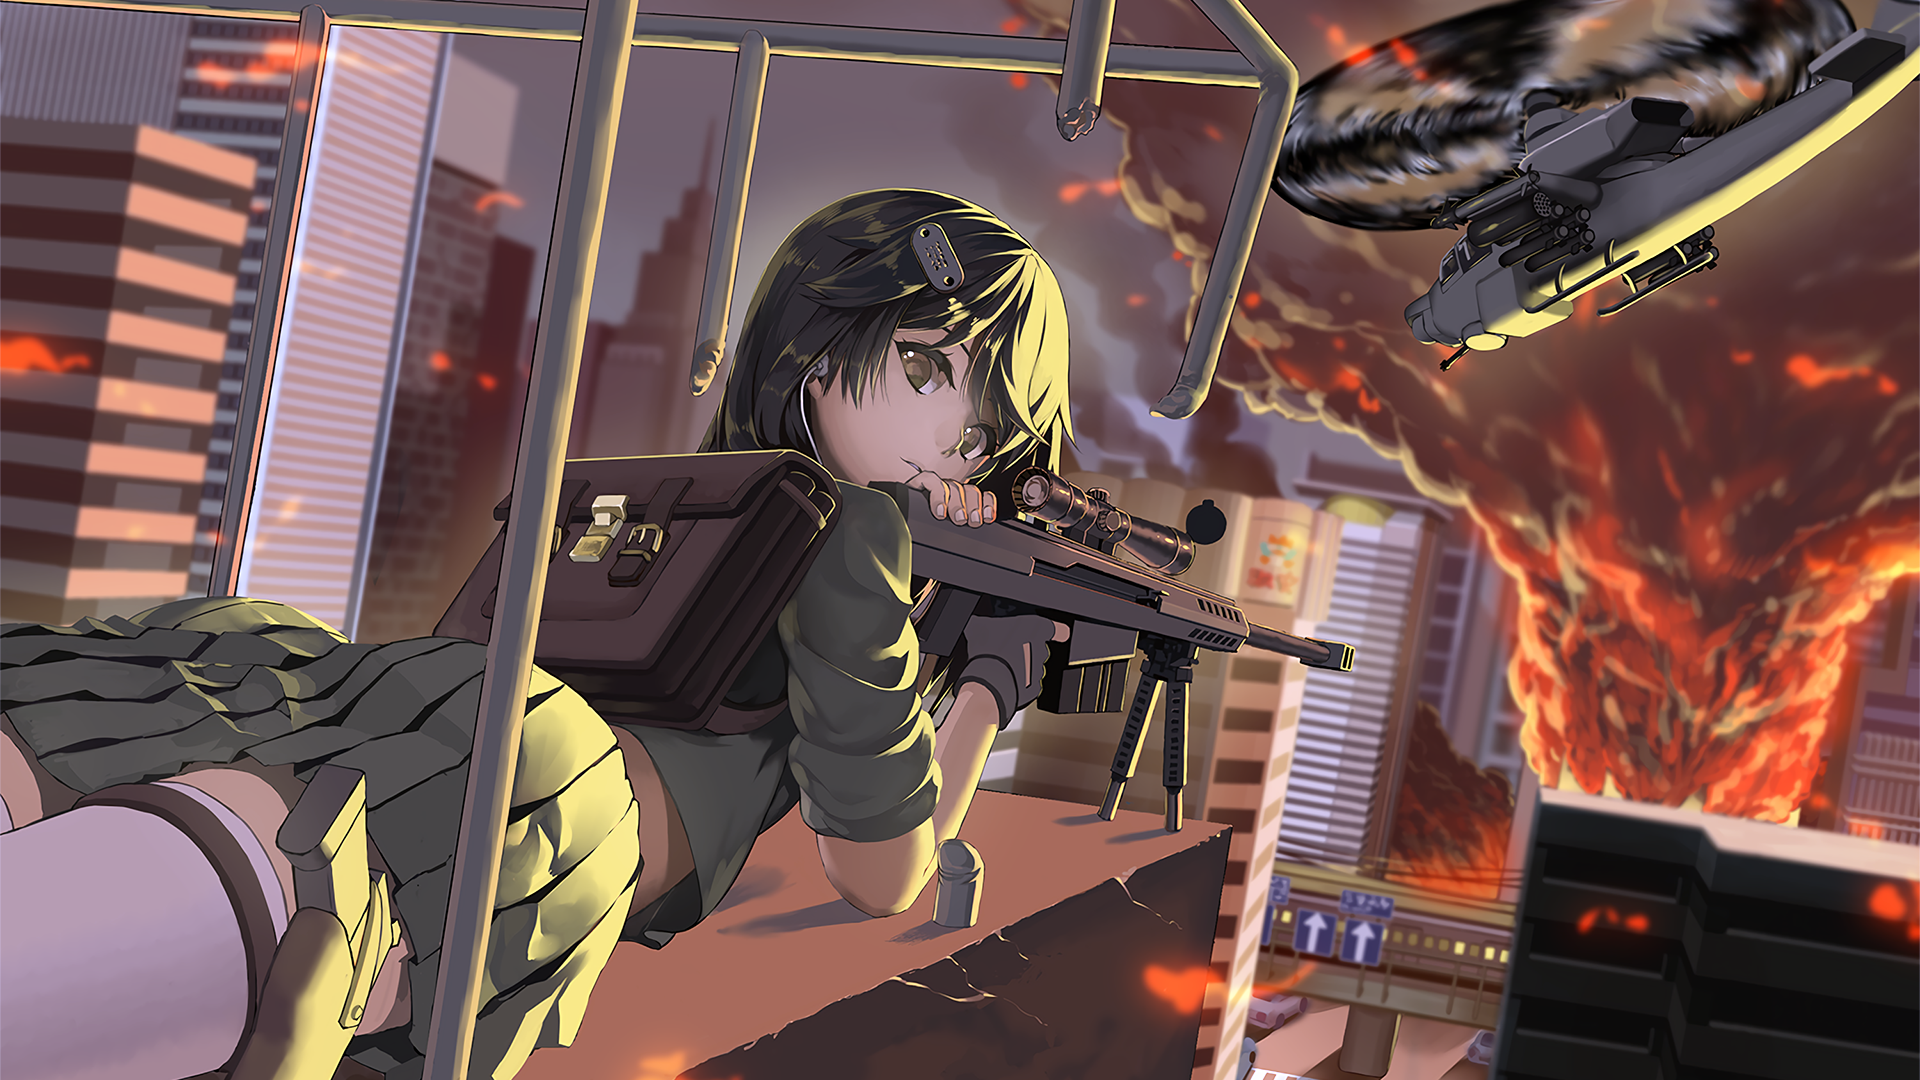 After-School-Sniping-Practice-1920x1080-Need-iPhone-S-Plus-Background-for-IPhone-wallpaper-wp3402211